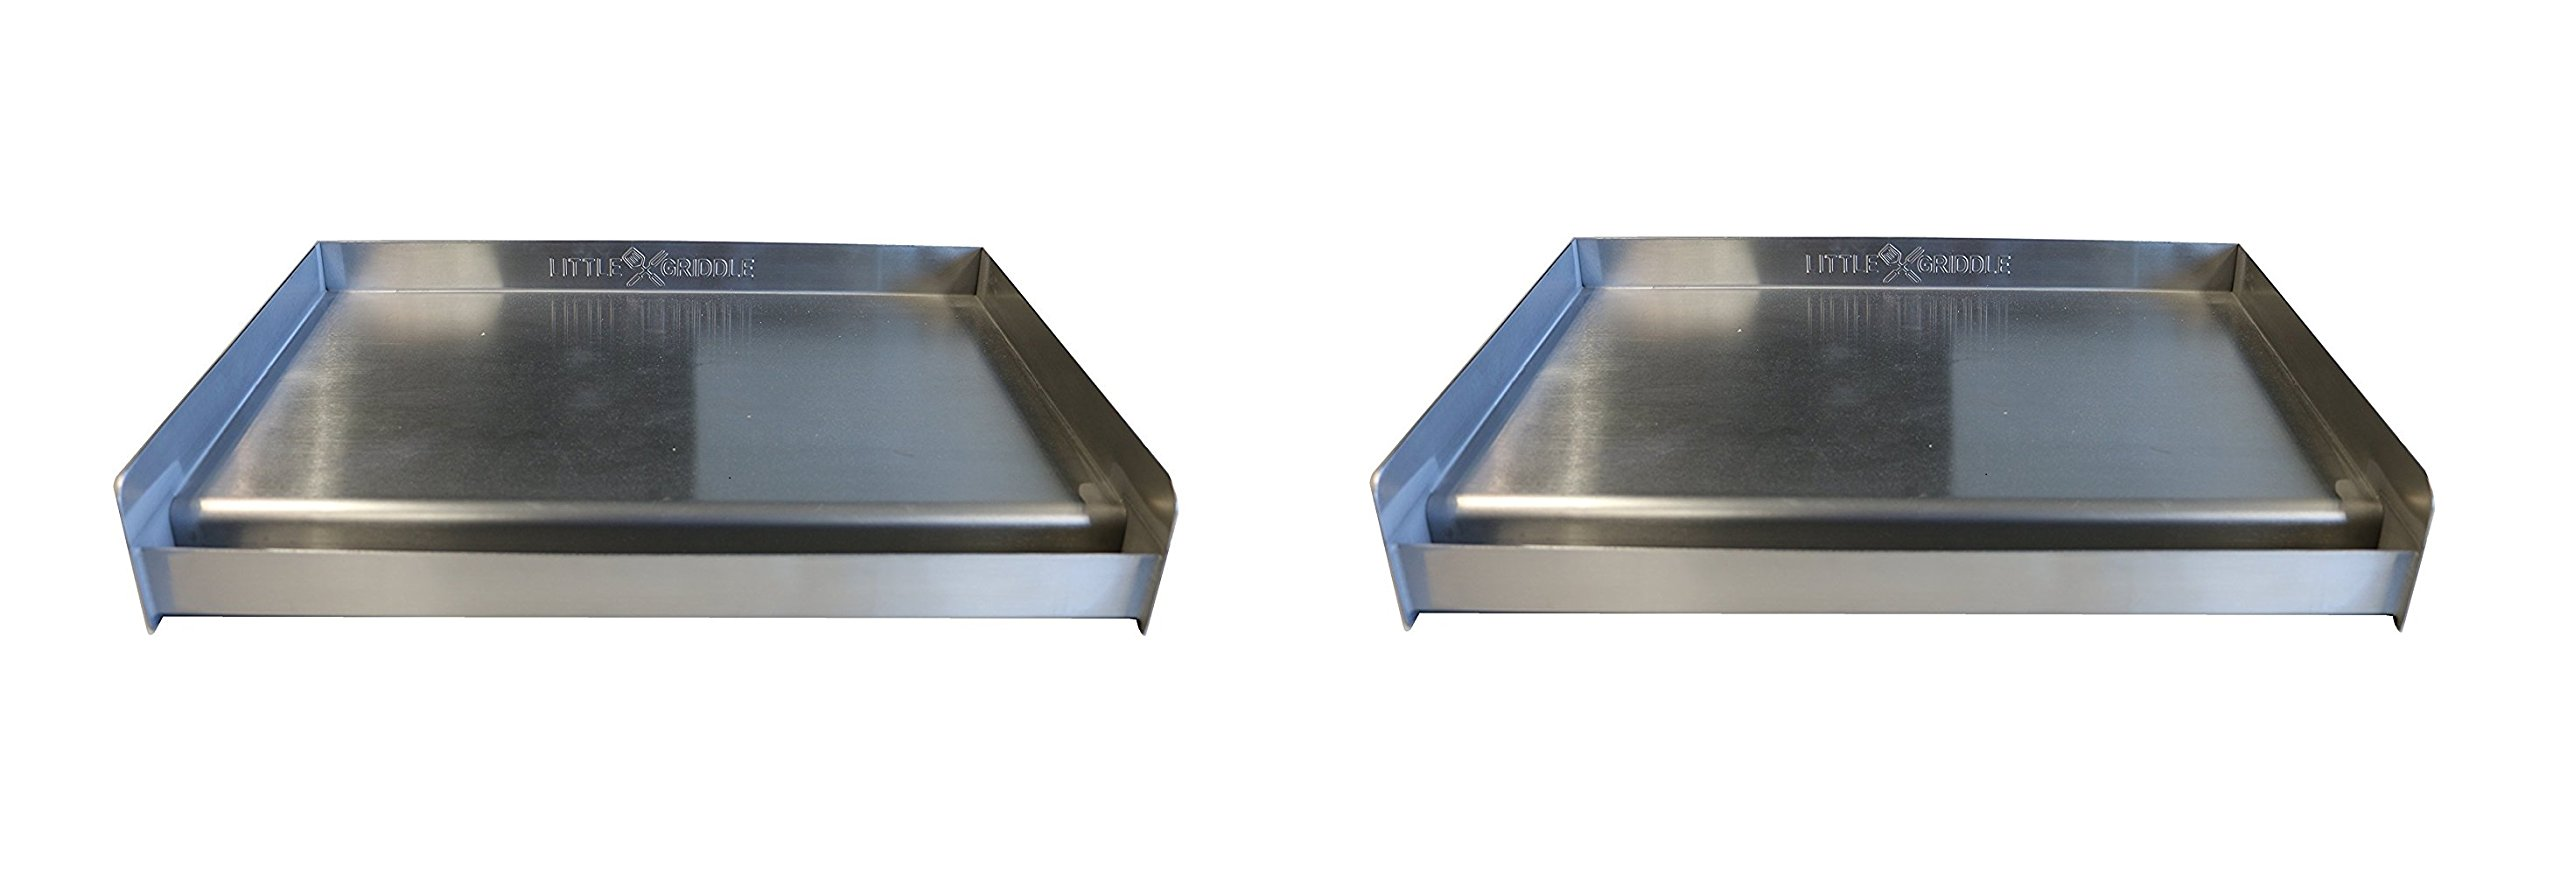 Little Griddle SQ180 Universal Griddle for BBQ Grills, Stainless (Formerly the Sizzle-Q) (Pack of 2) by Little Griddle (Image #1)